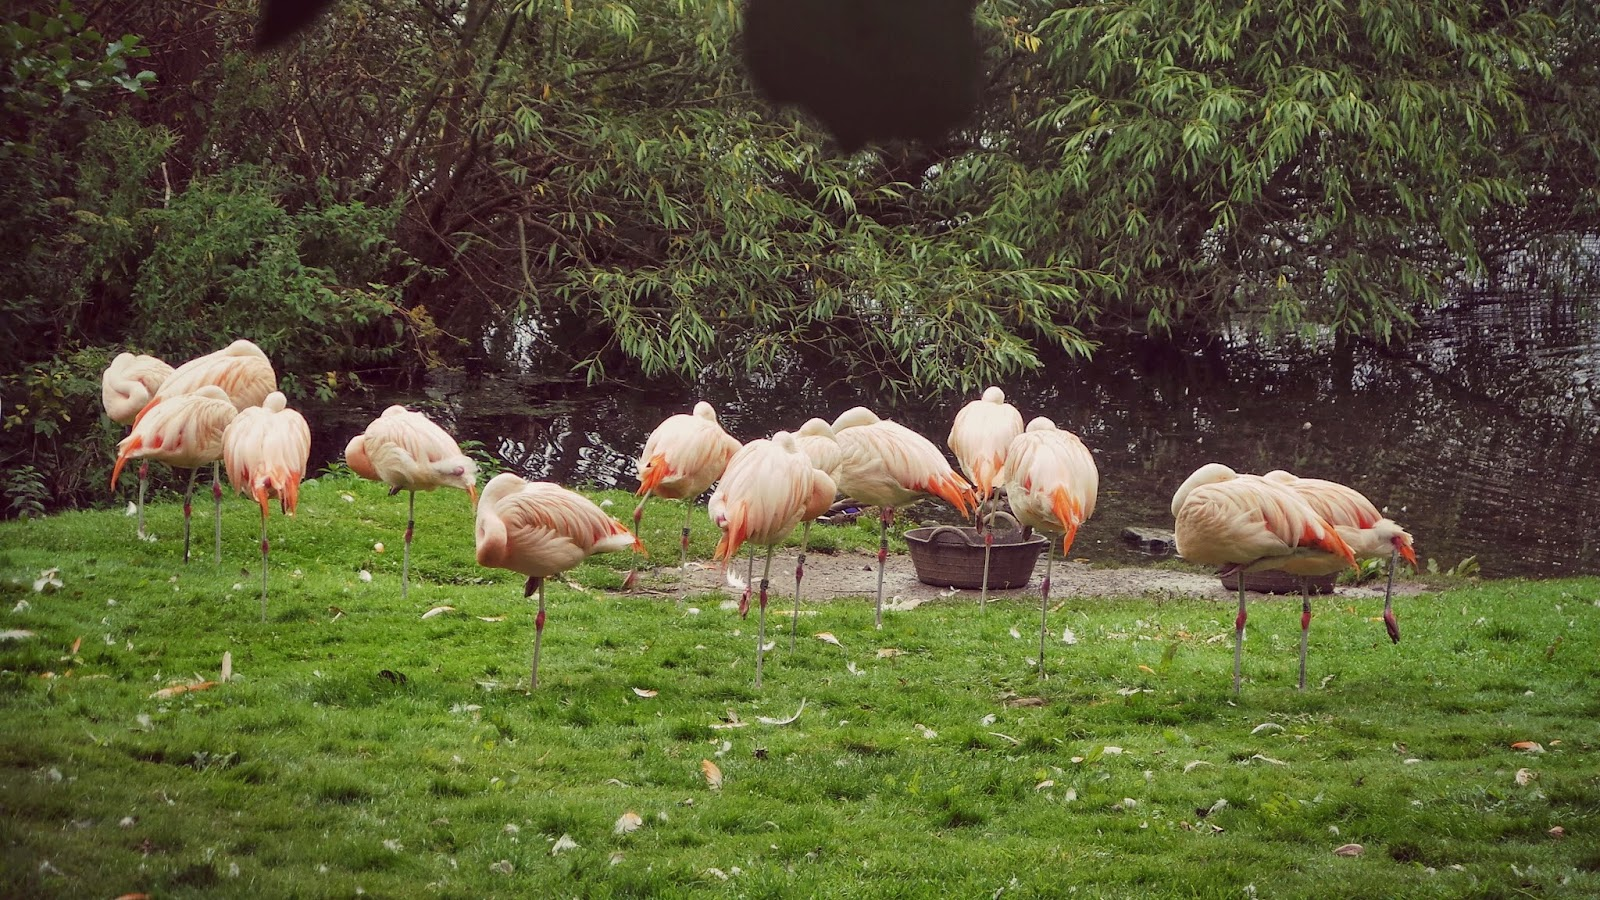 flamingos at harewood house bird garden